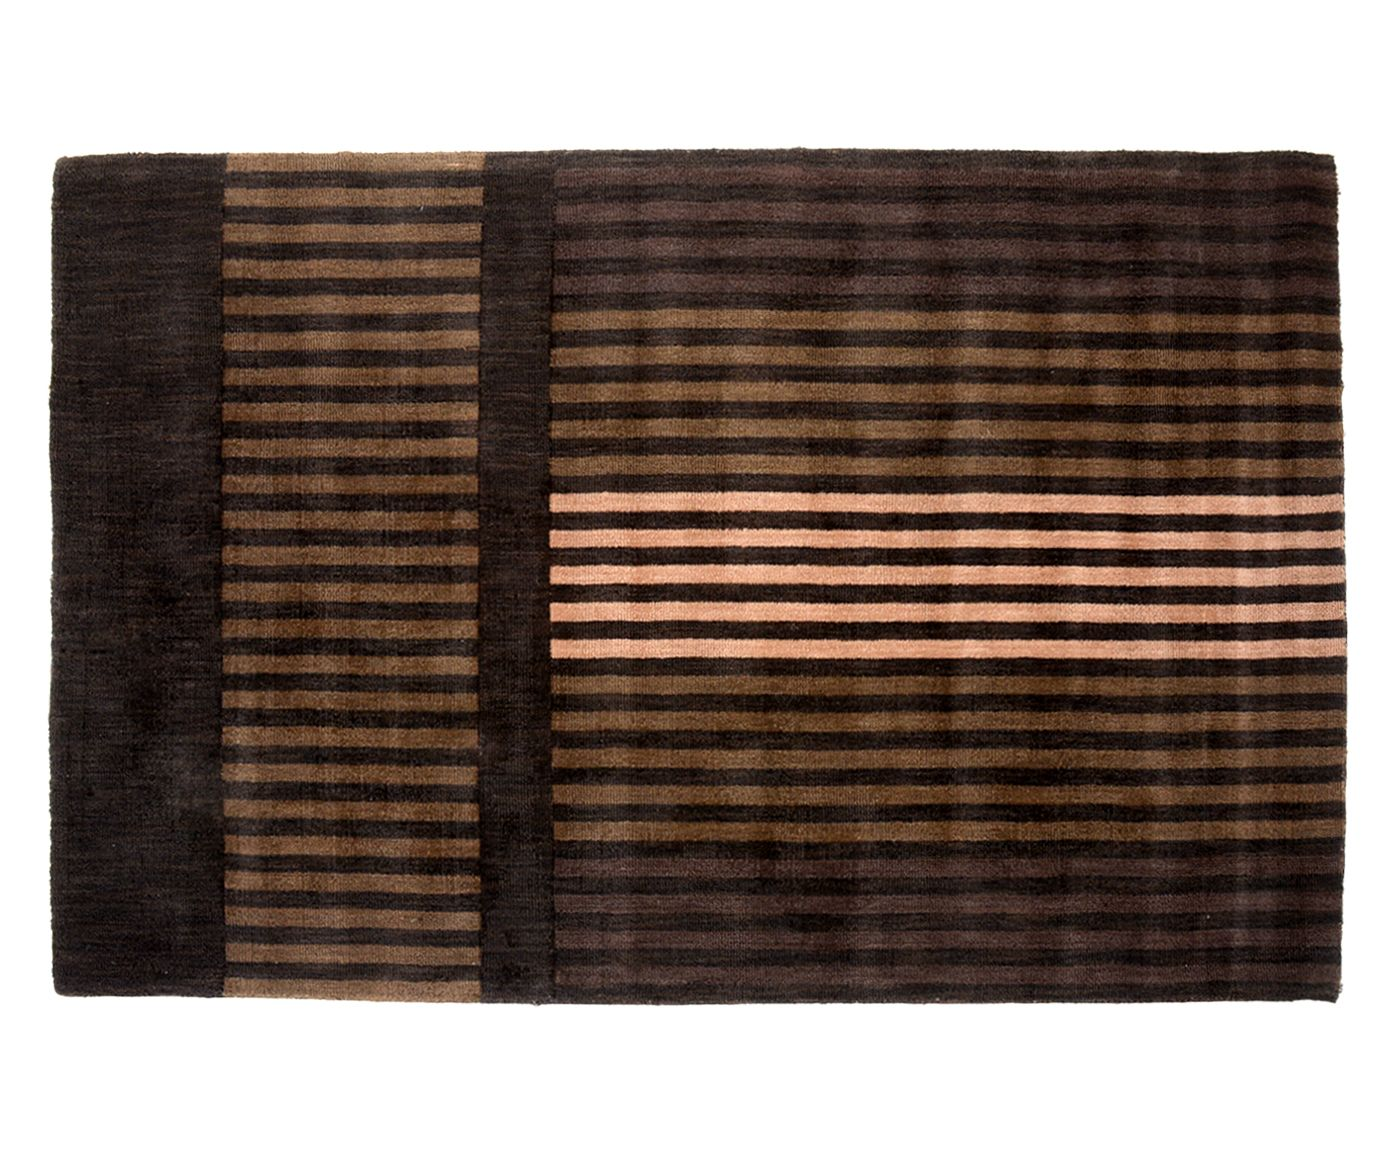 Tapete Artesanal Indiano Bansi - 152X242cm | Westwing.com.br